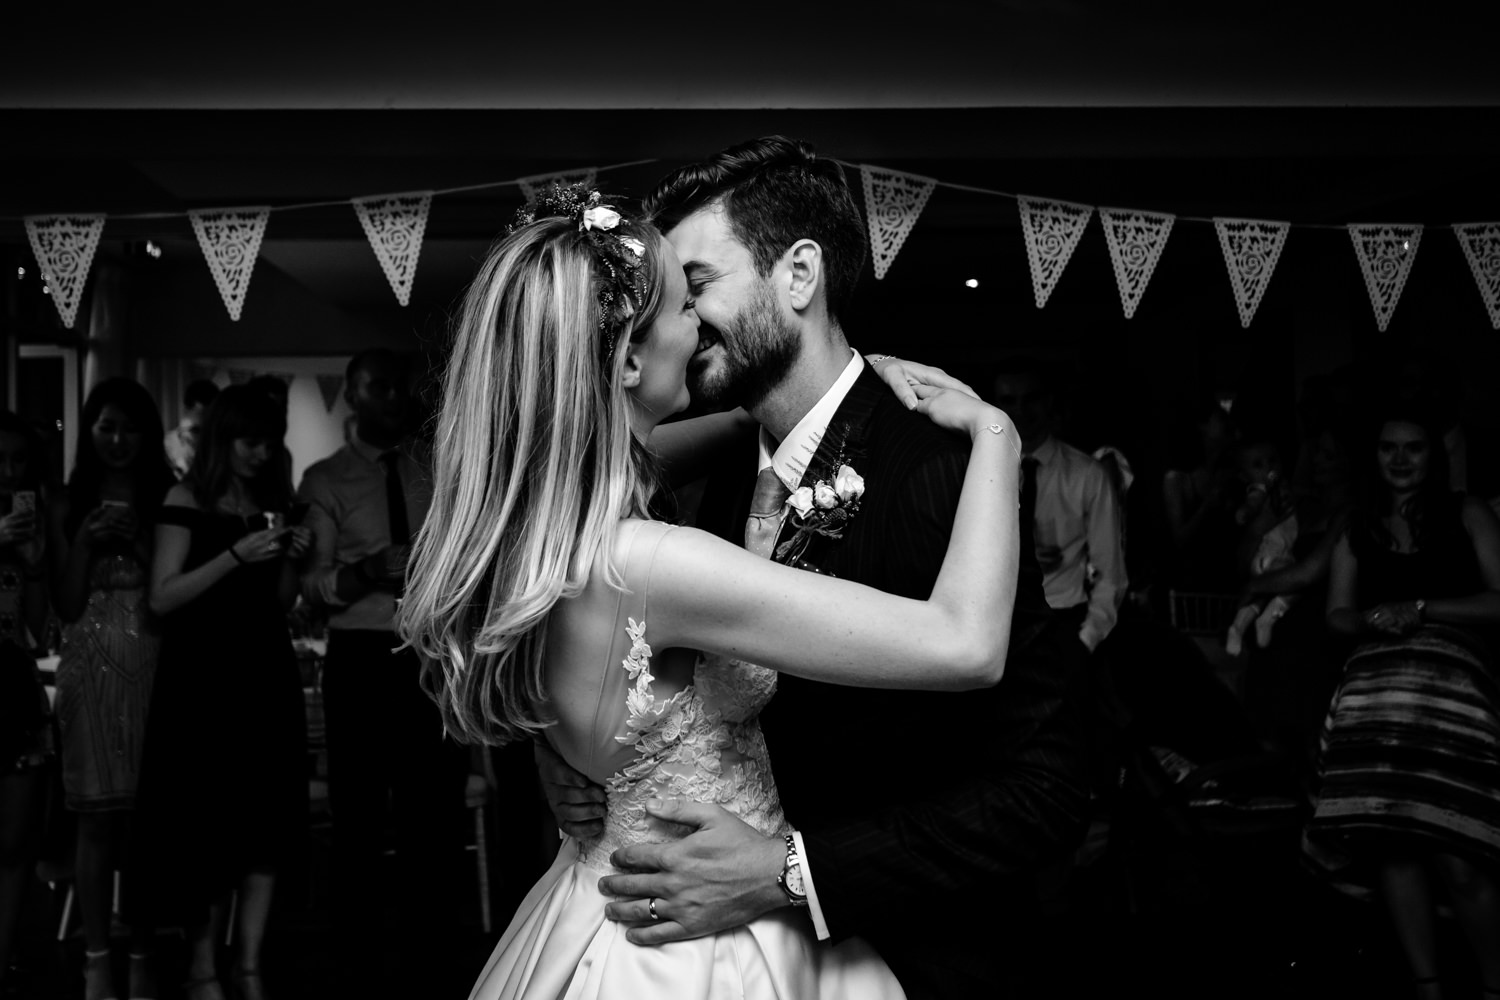 First Dance, Whirlowbrook Hall wedding photography